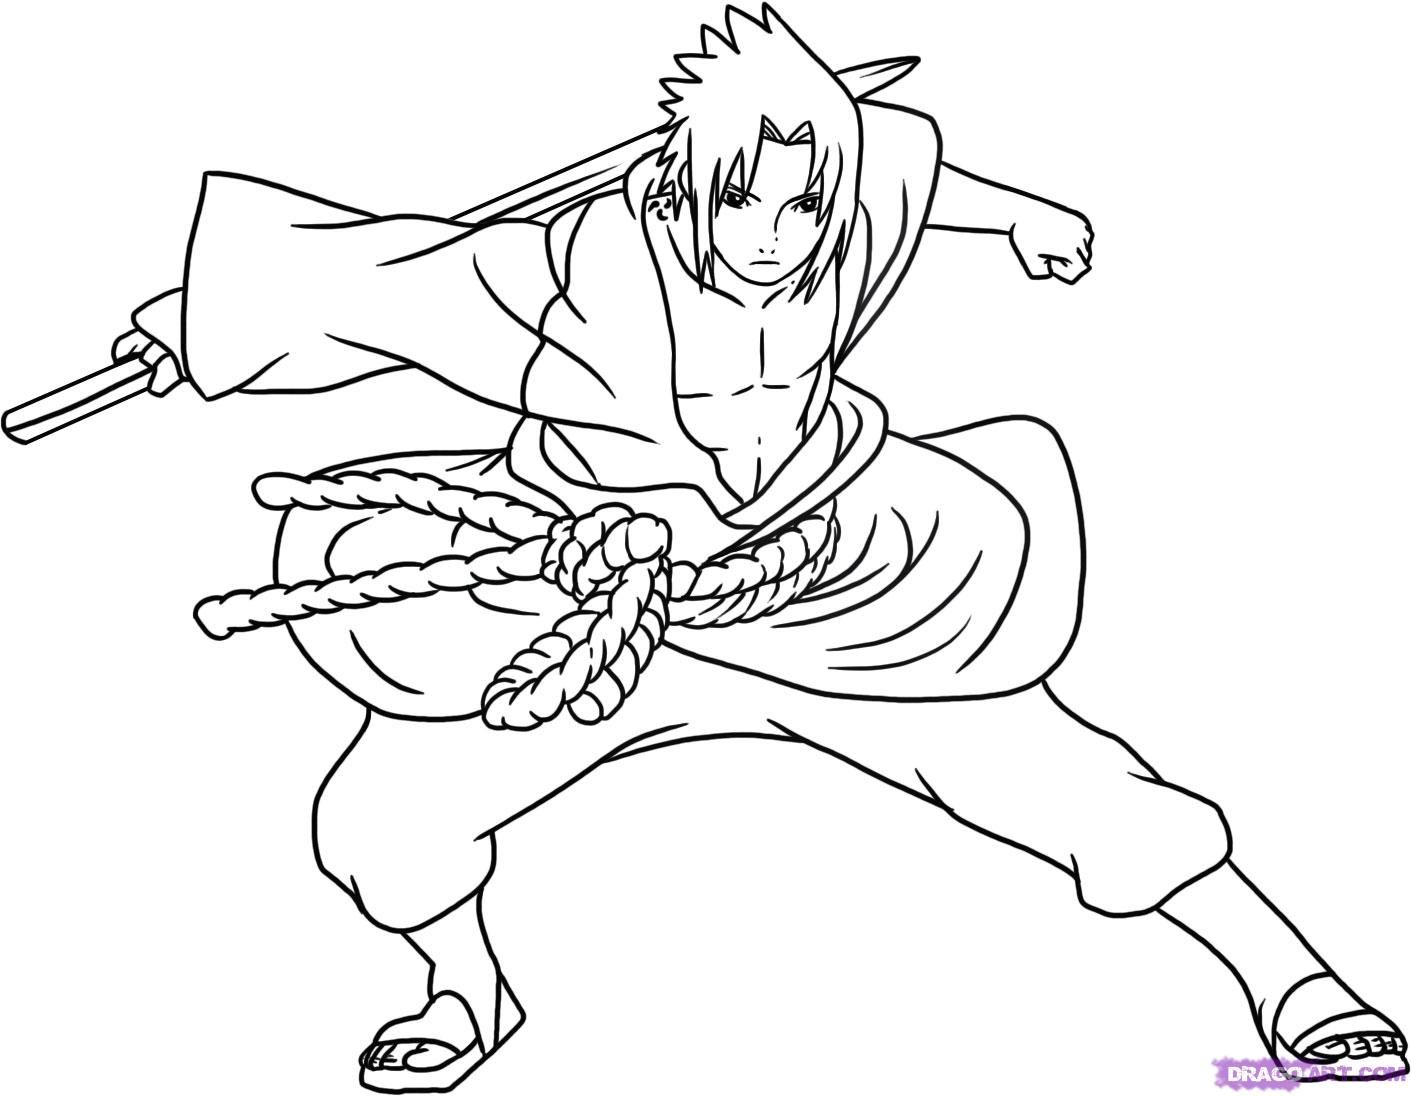 Naruto Coloring pages | Coloring Pages of Epicness | Pinterest